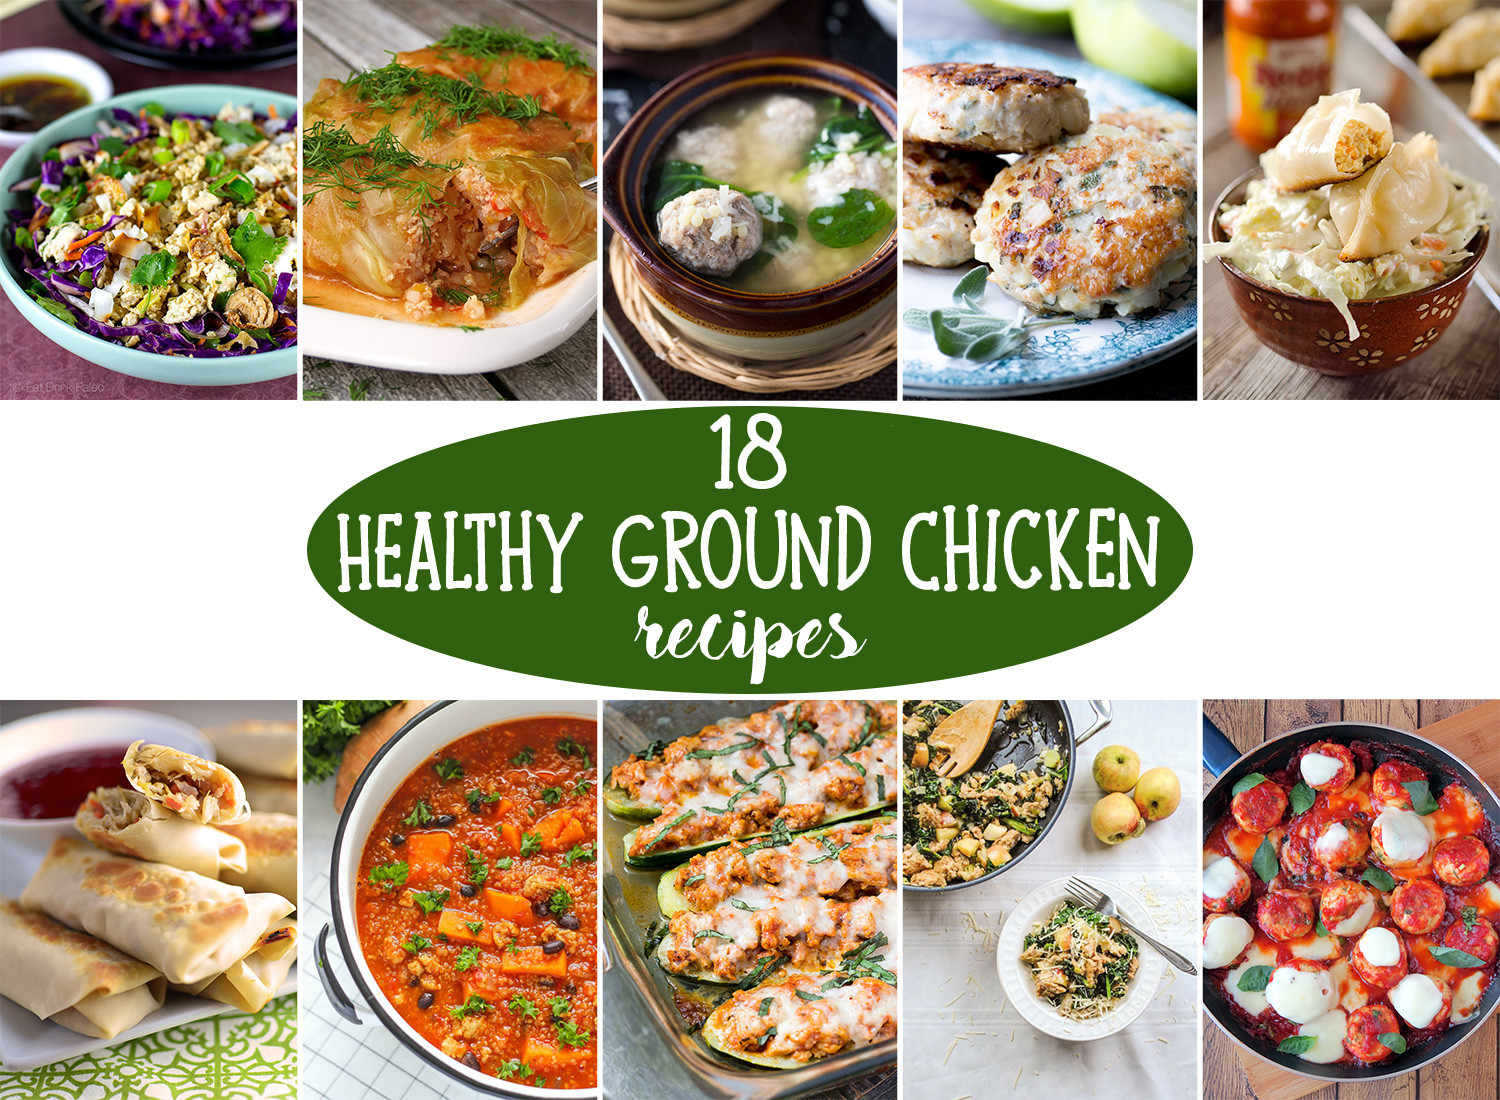 Is Ground Chicken Healthy  18 Healthy Ground Chicken Recipes That ll Make You Feel Great